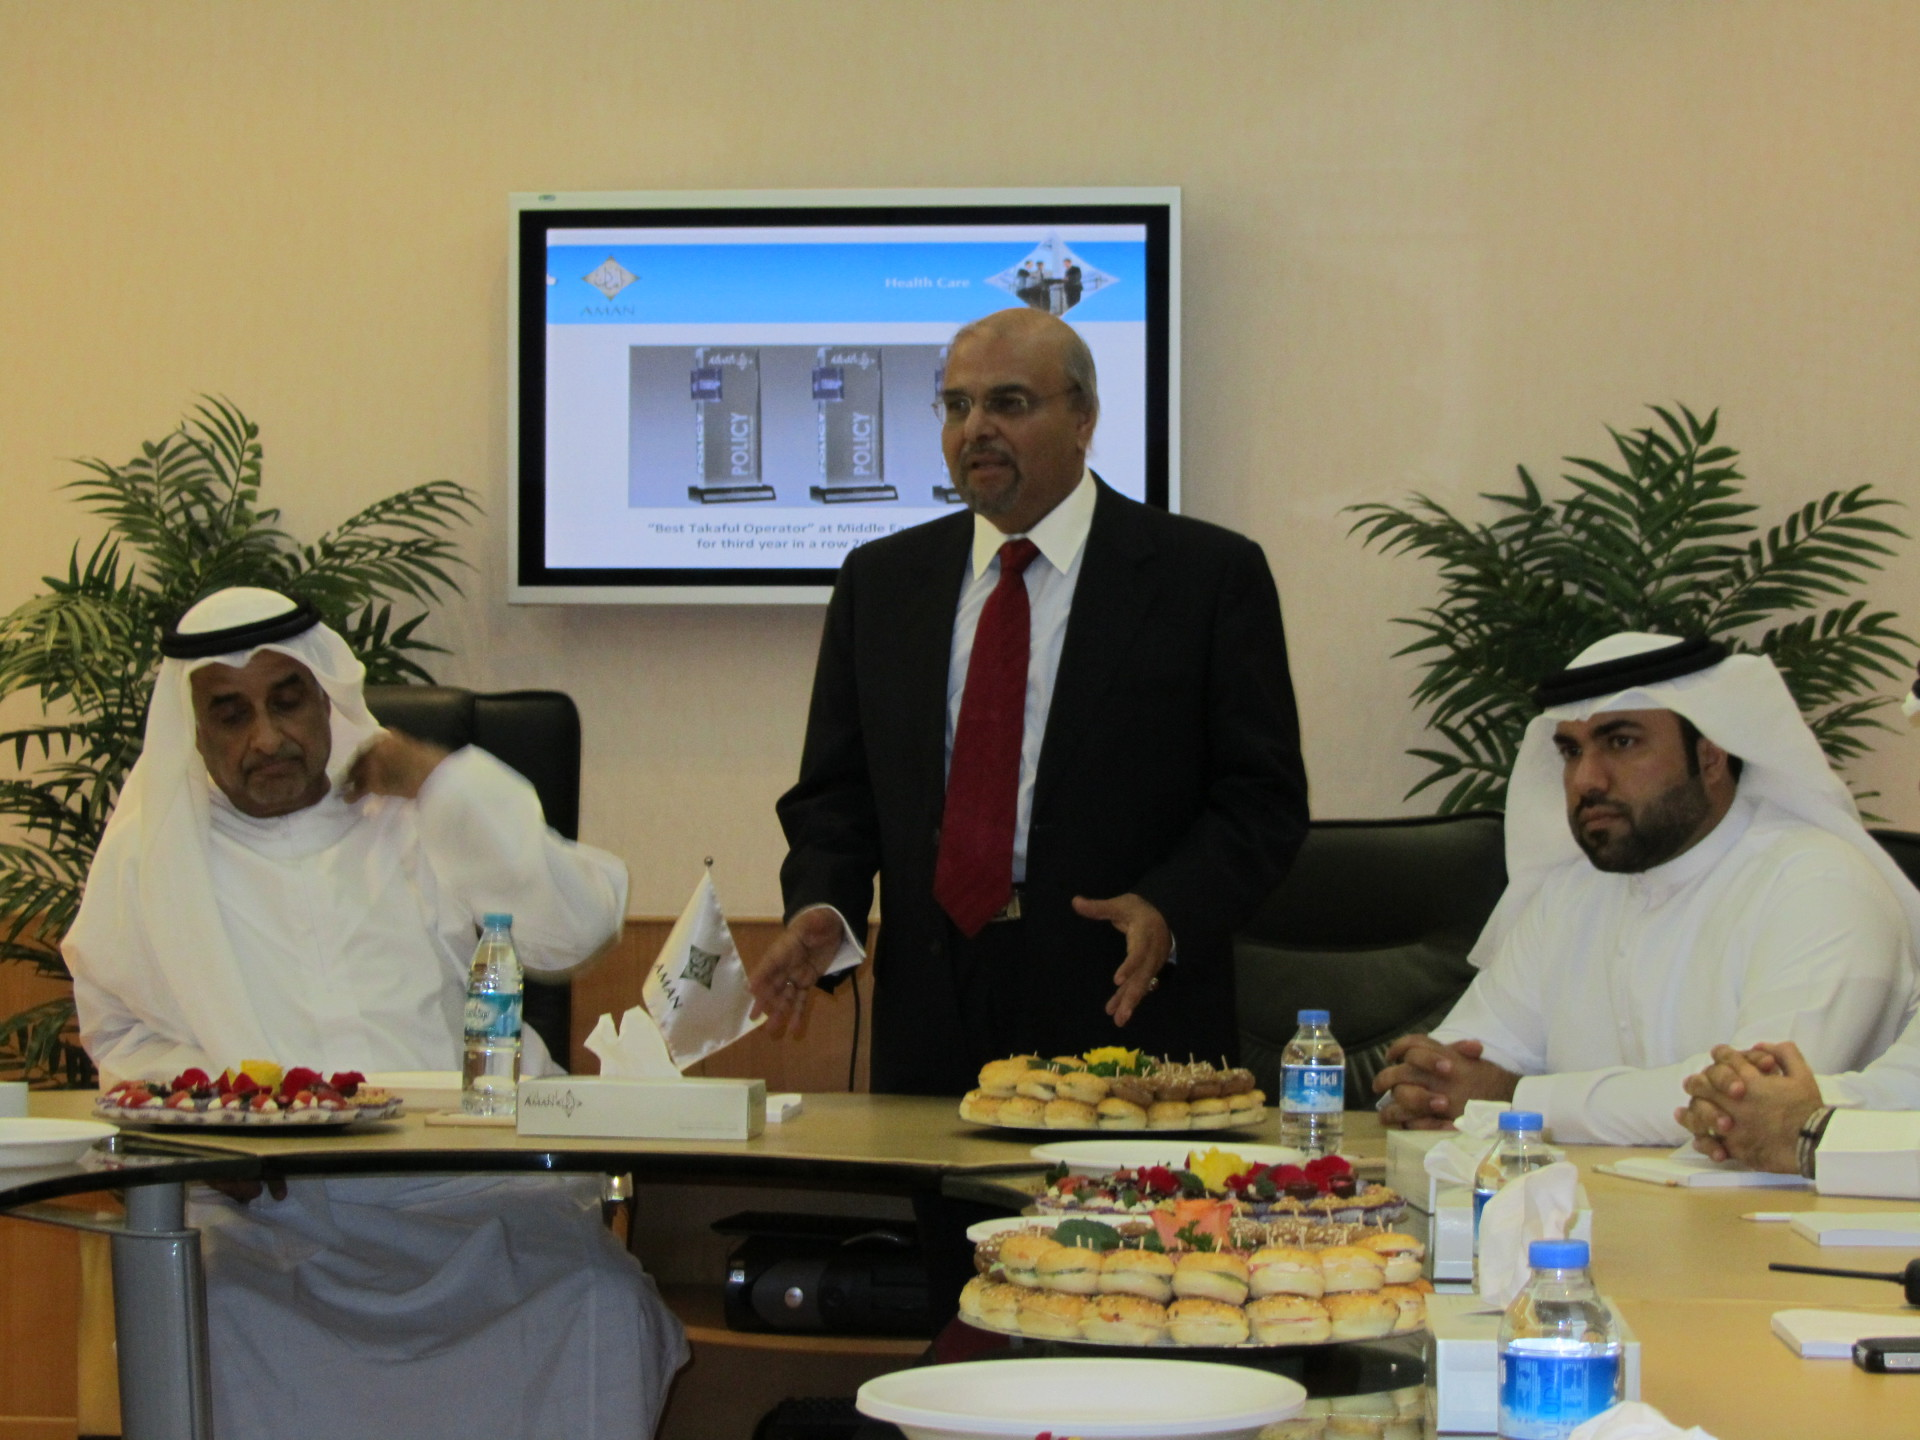 Farewell address to the Board at Aman Insurance, UAE